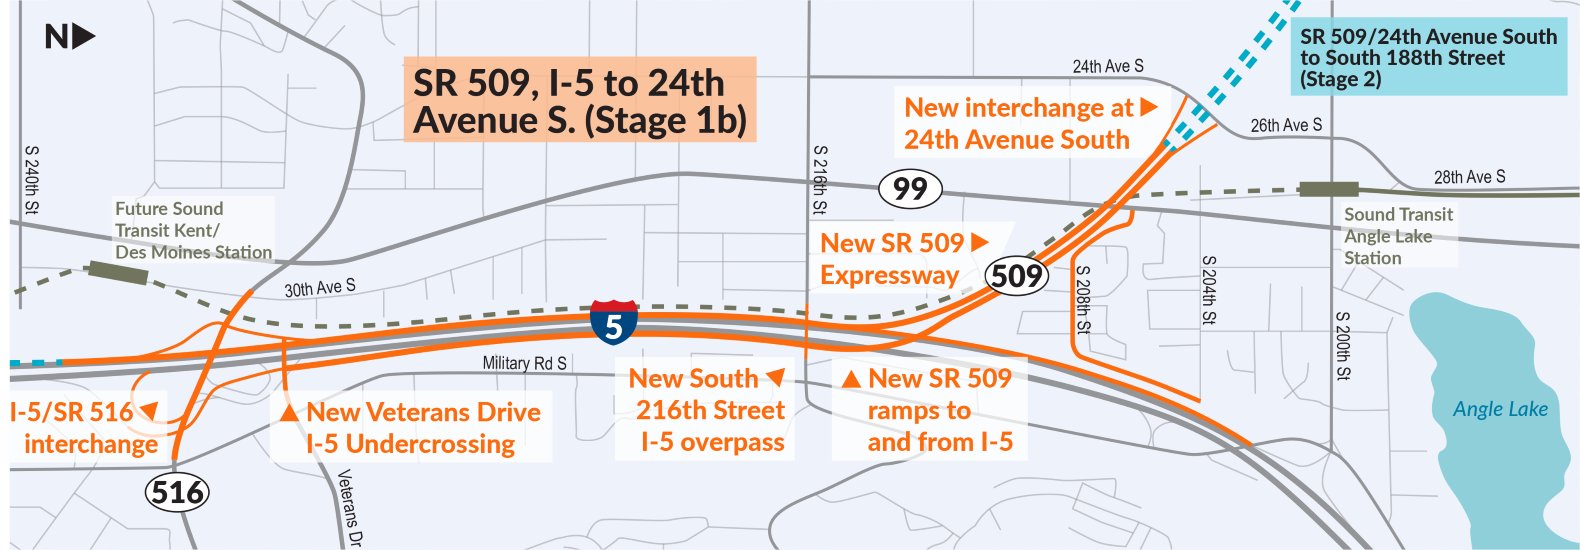 A map of the SR 509 expressway project